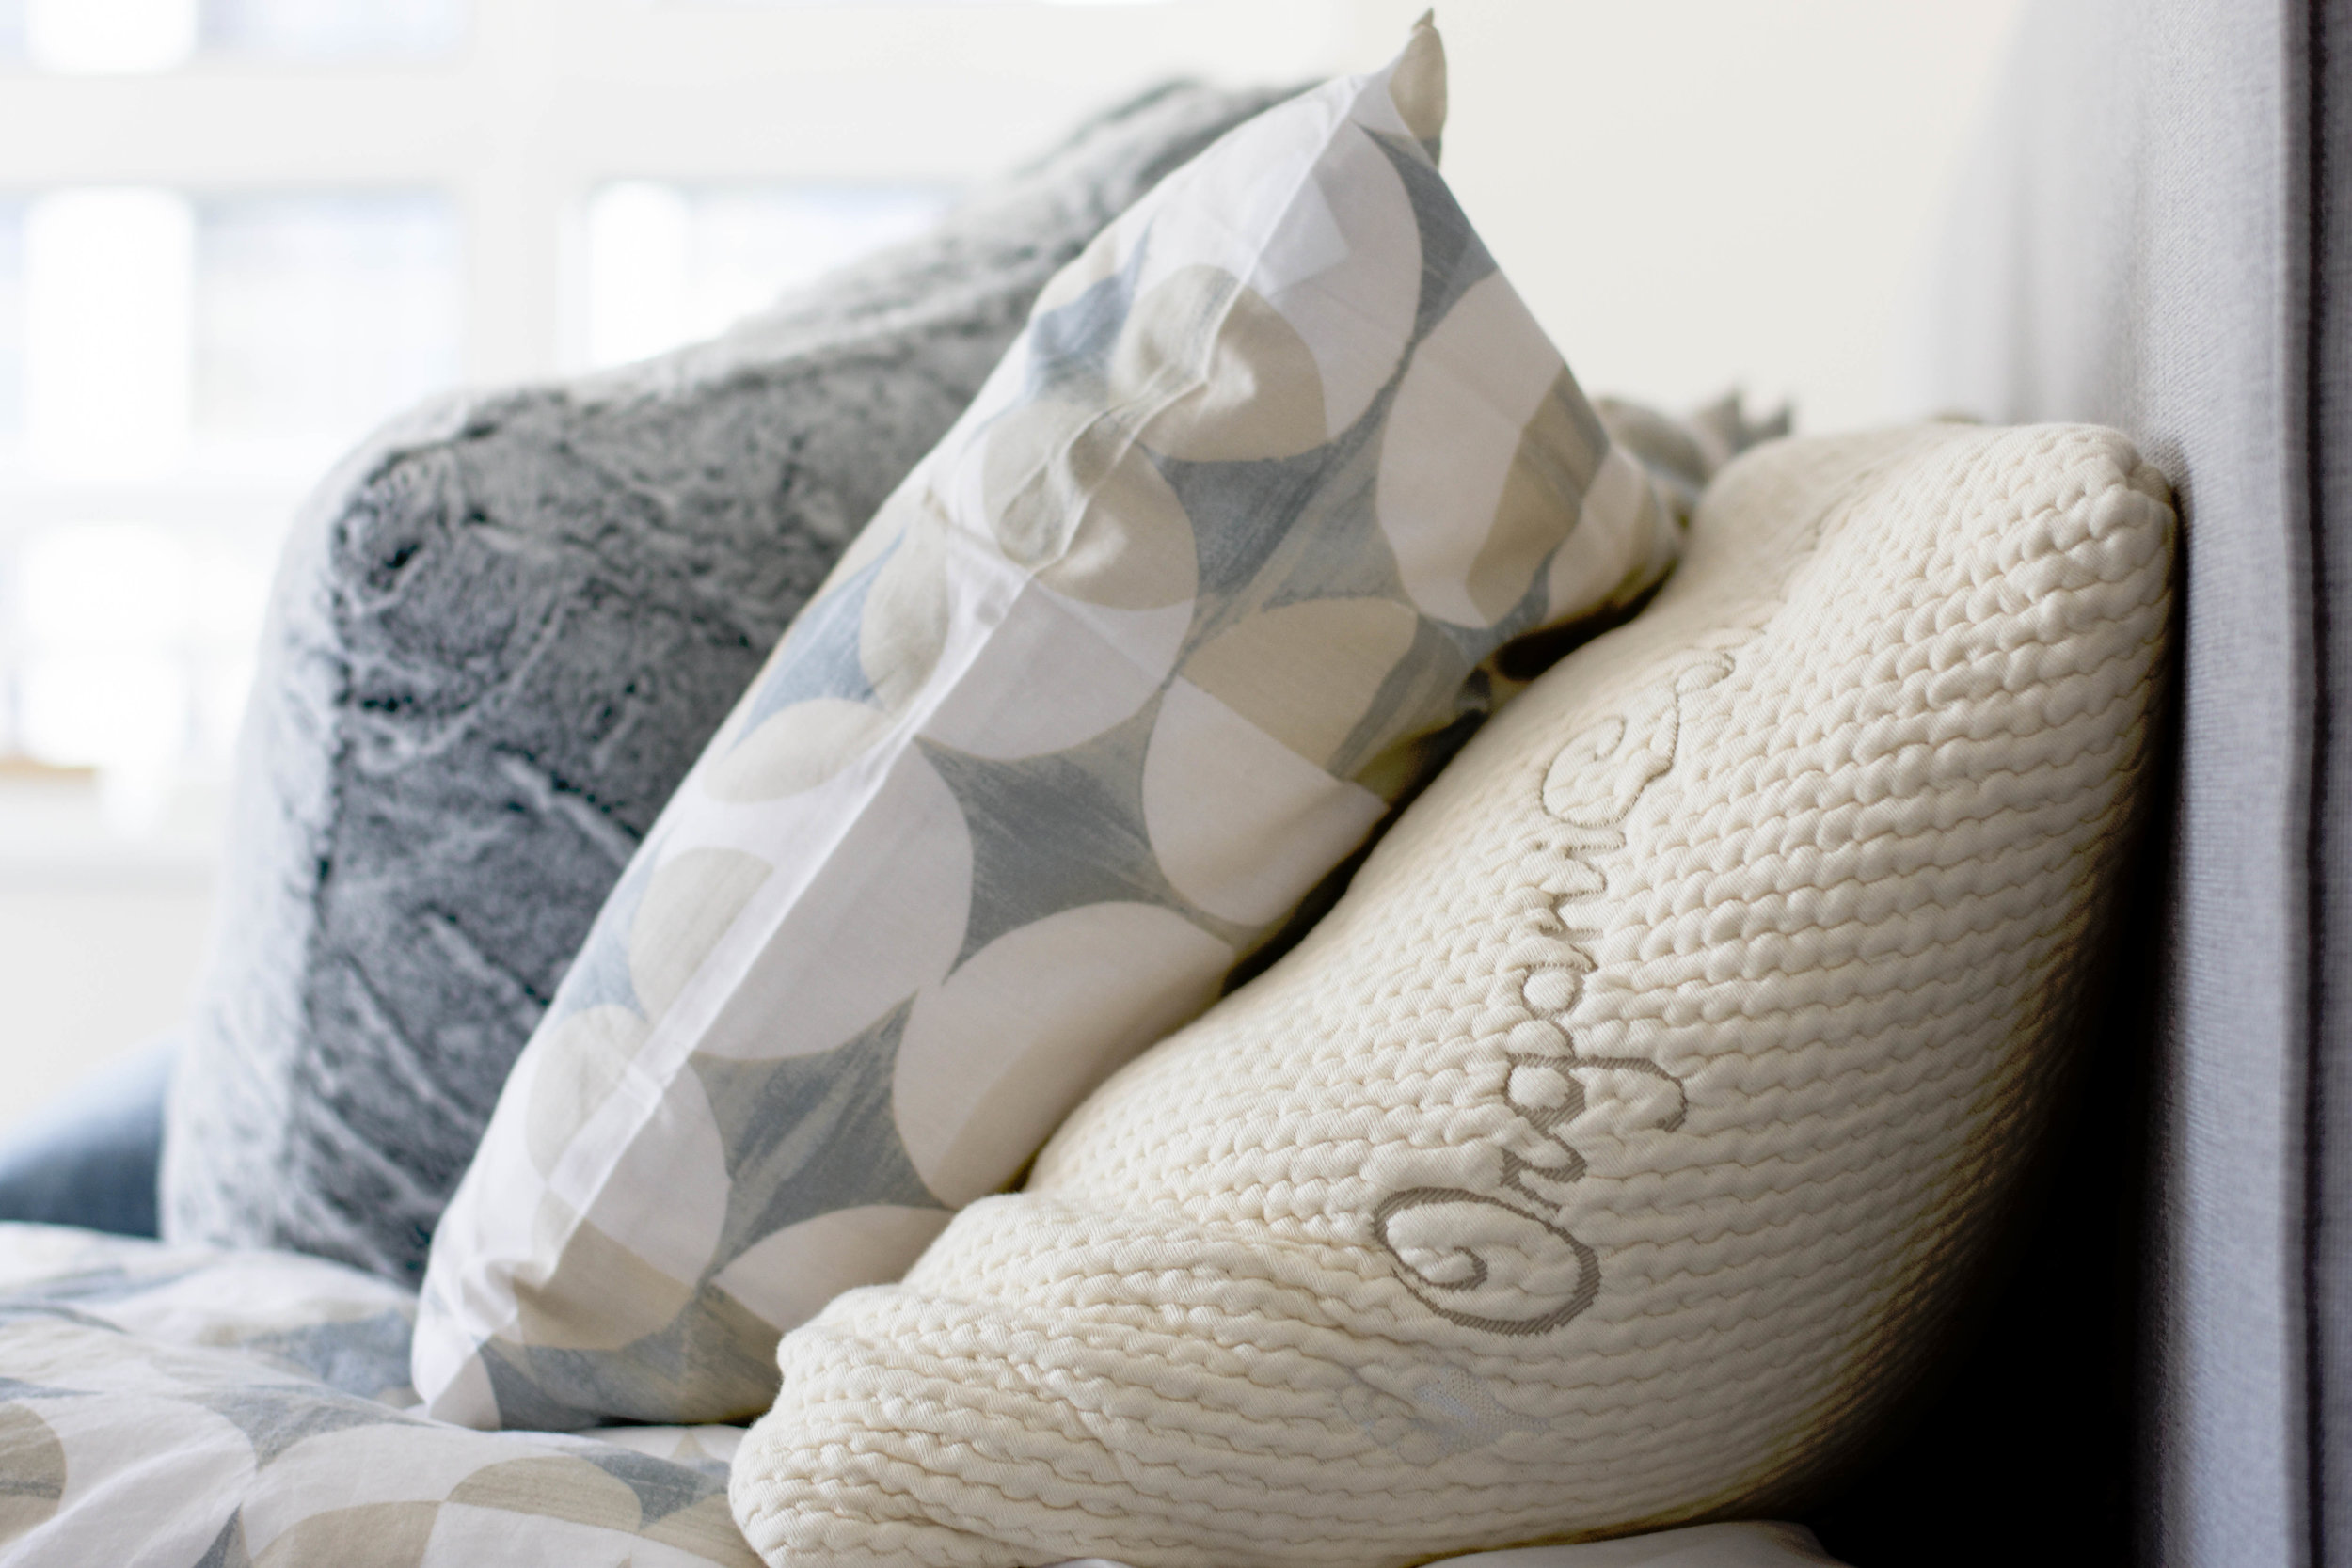 Everpillow- The Natural Pillow That Gives Back